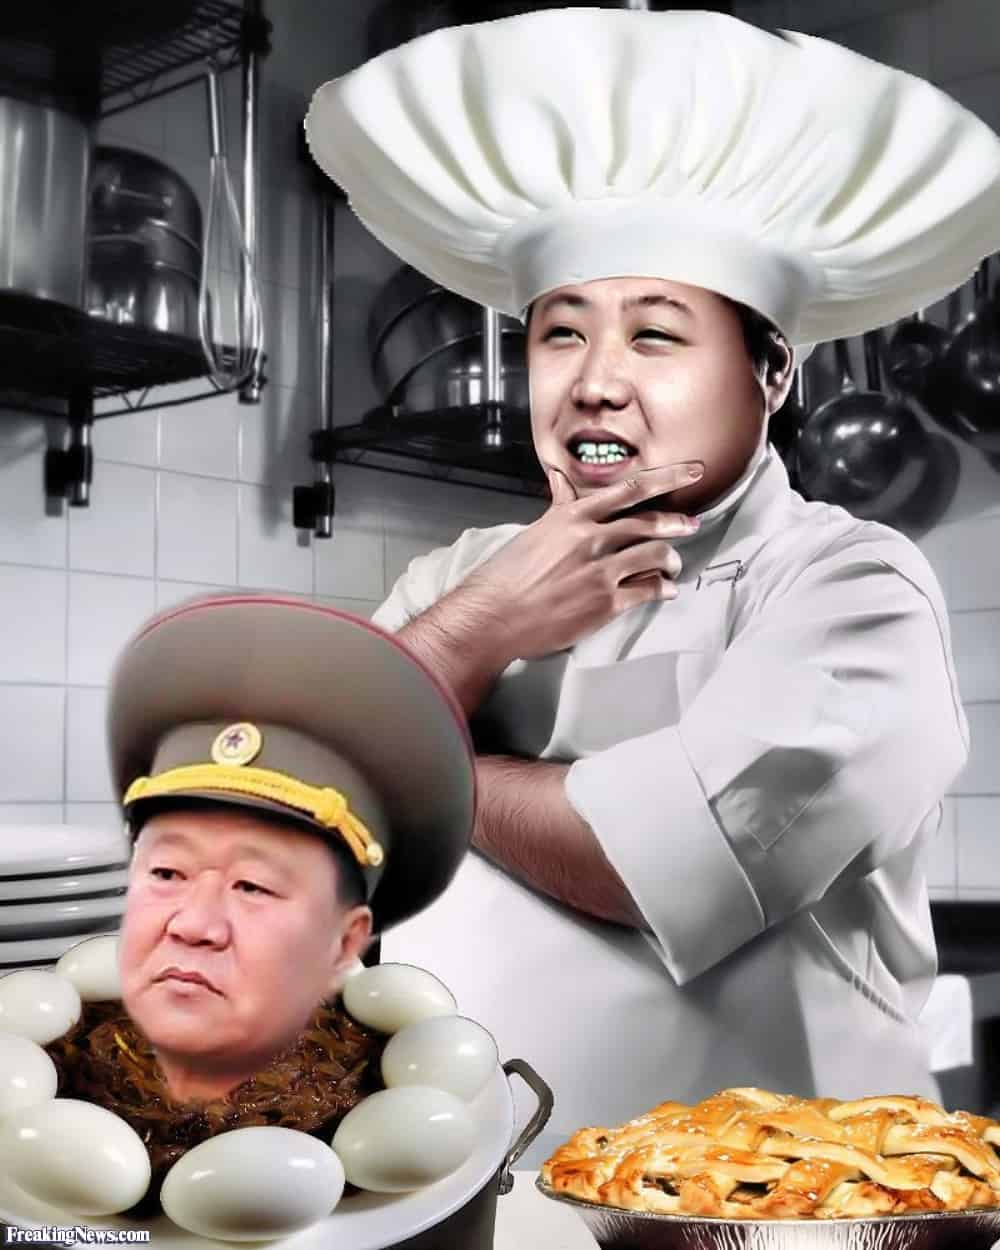 Las recetas de Kim jong un